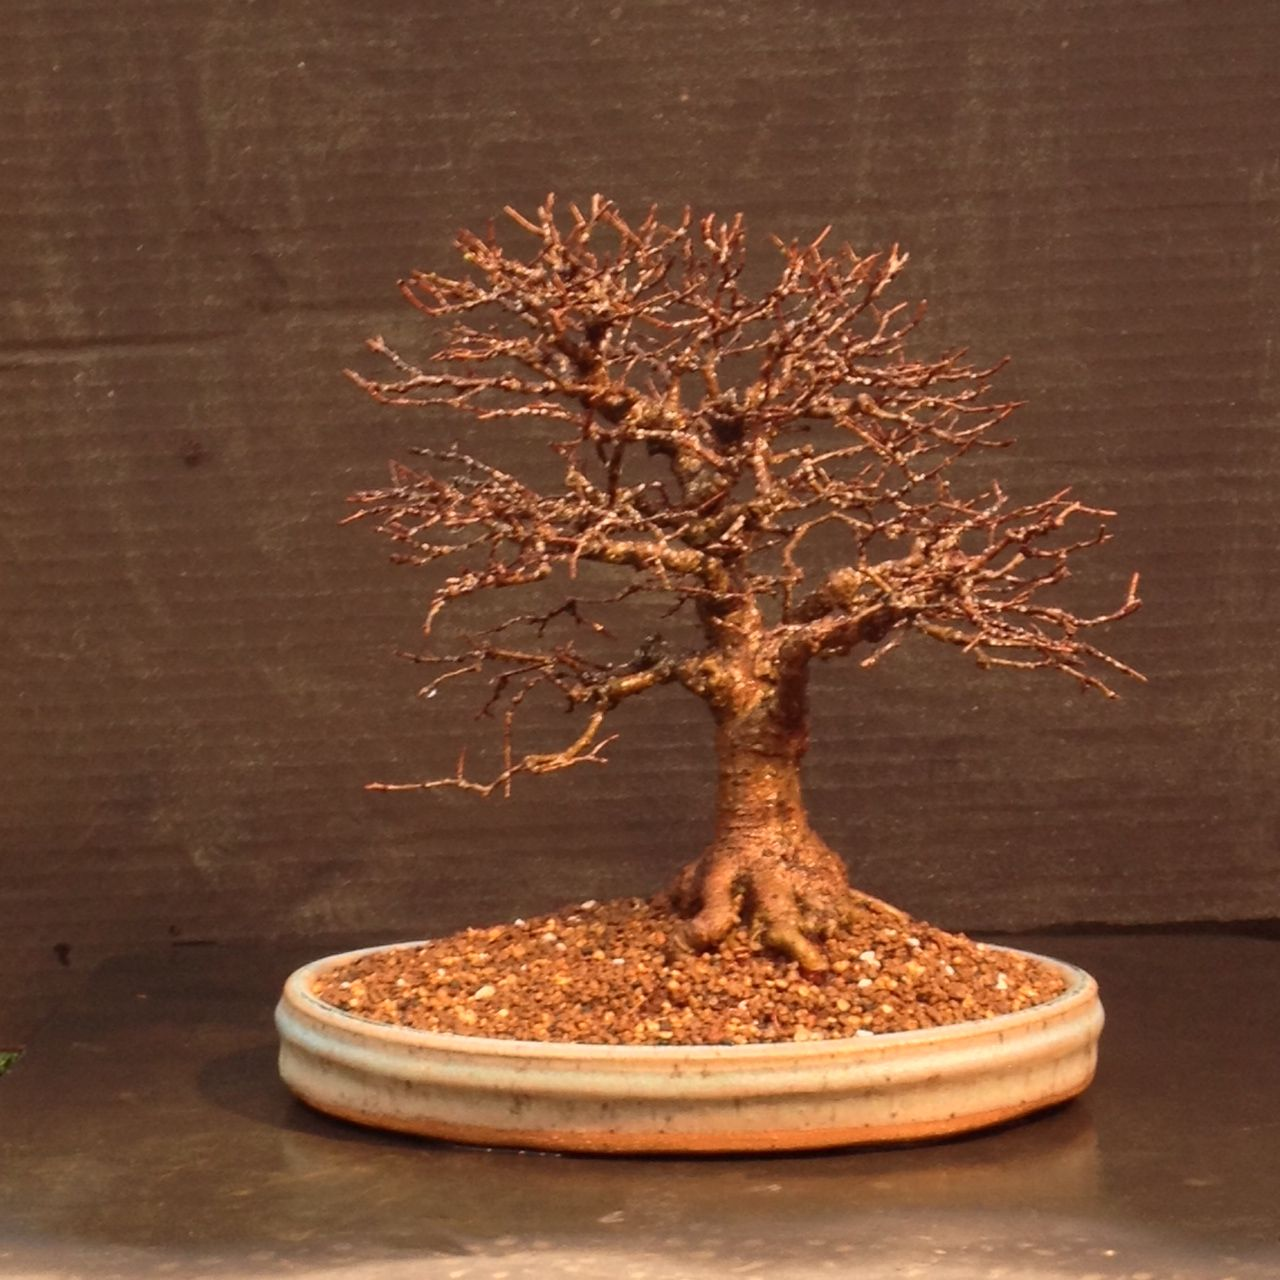 Quite An Honor For Rodney Clemons Of Allgood Bonsai To Plant This 25 Year Old Elm In One Of My Oval Shohin Pots Bonsai Pots Bonsai Plants